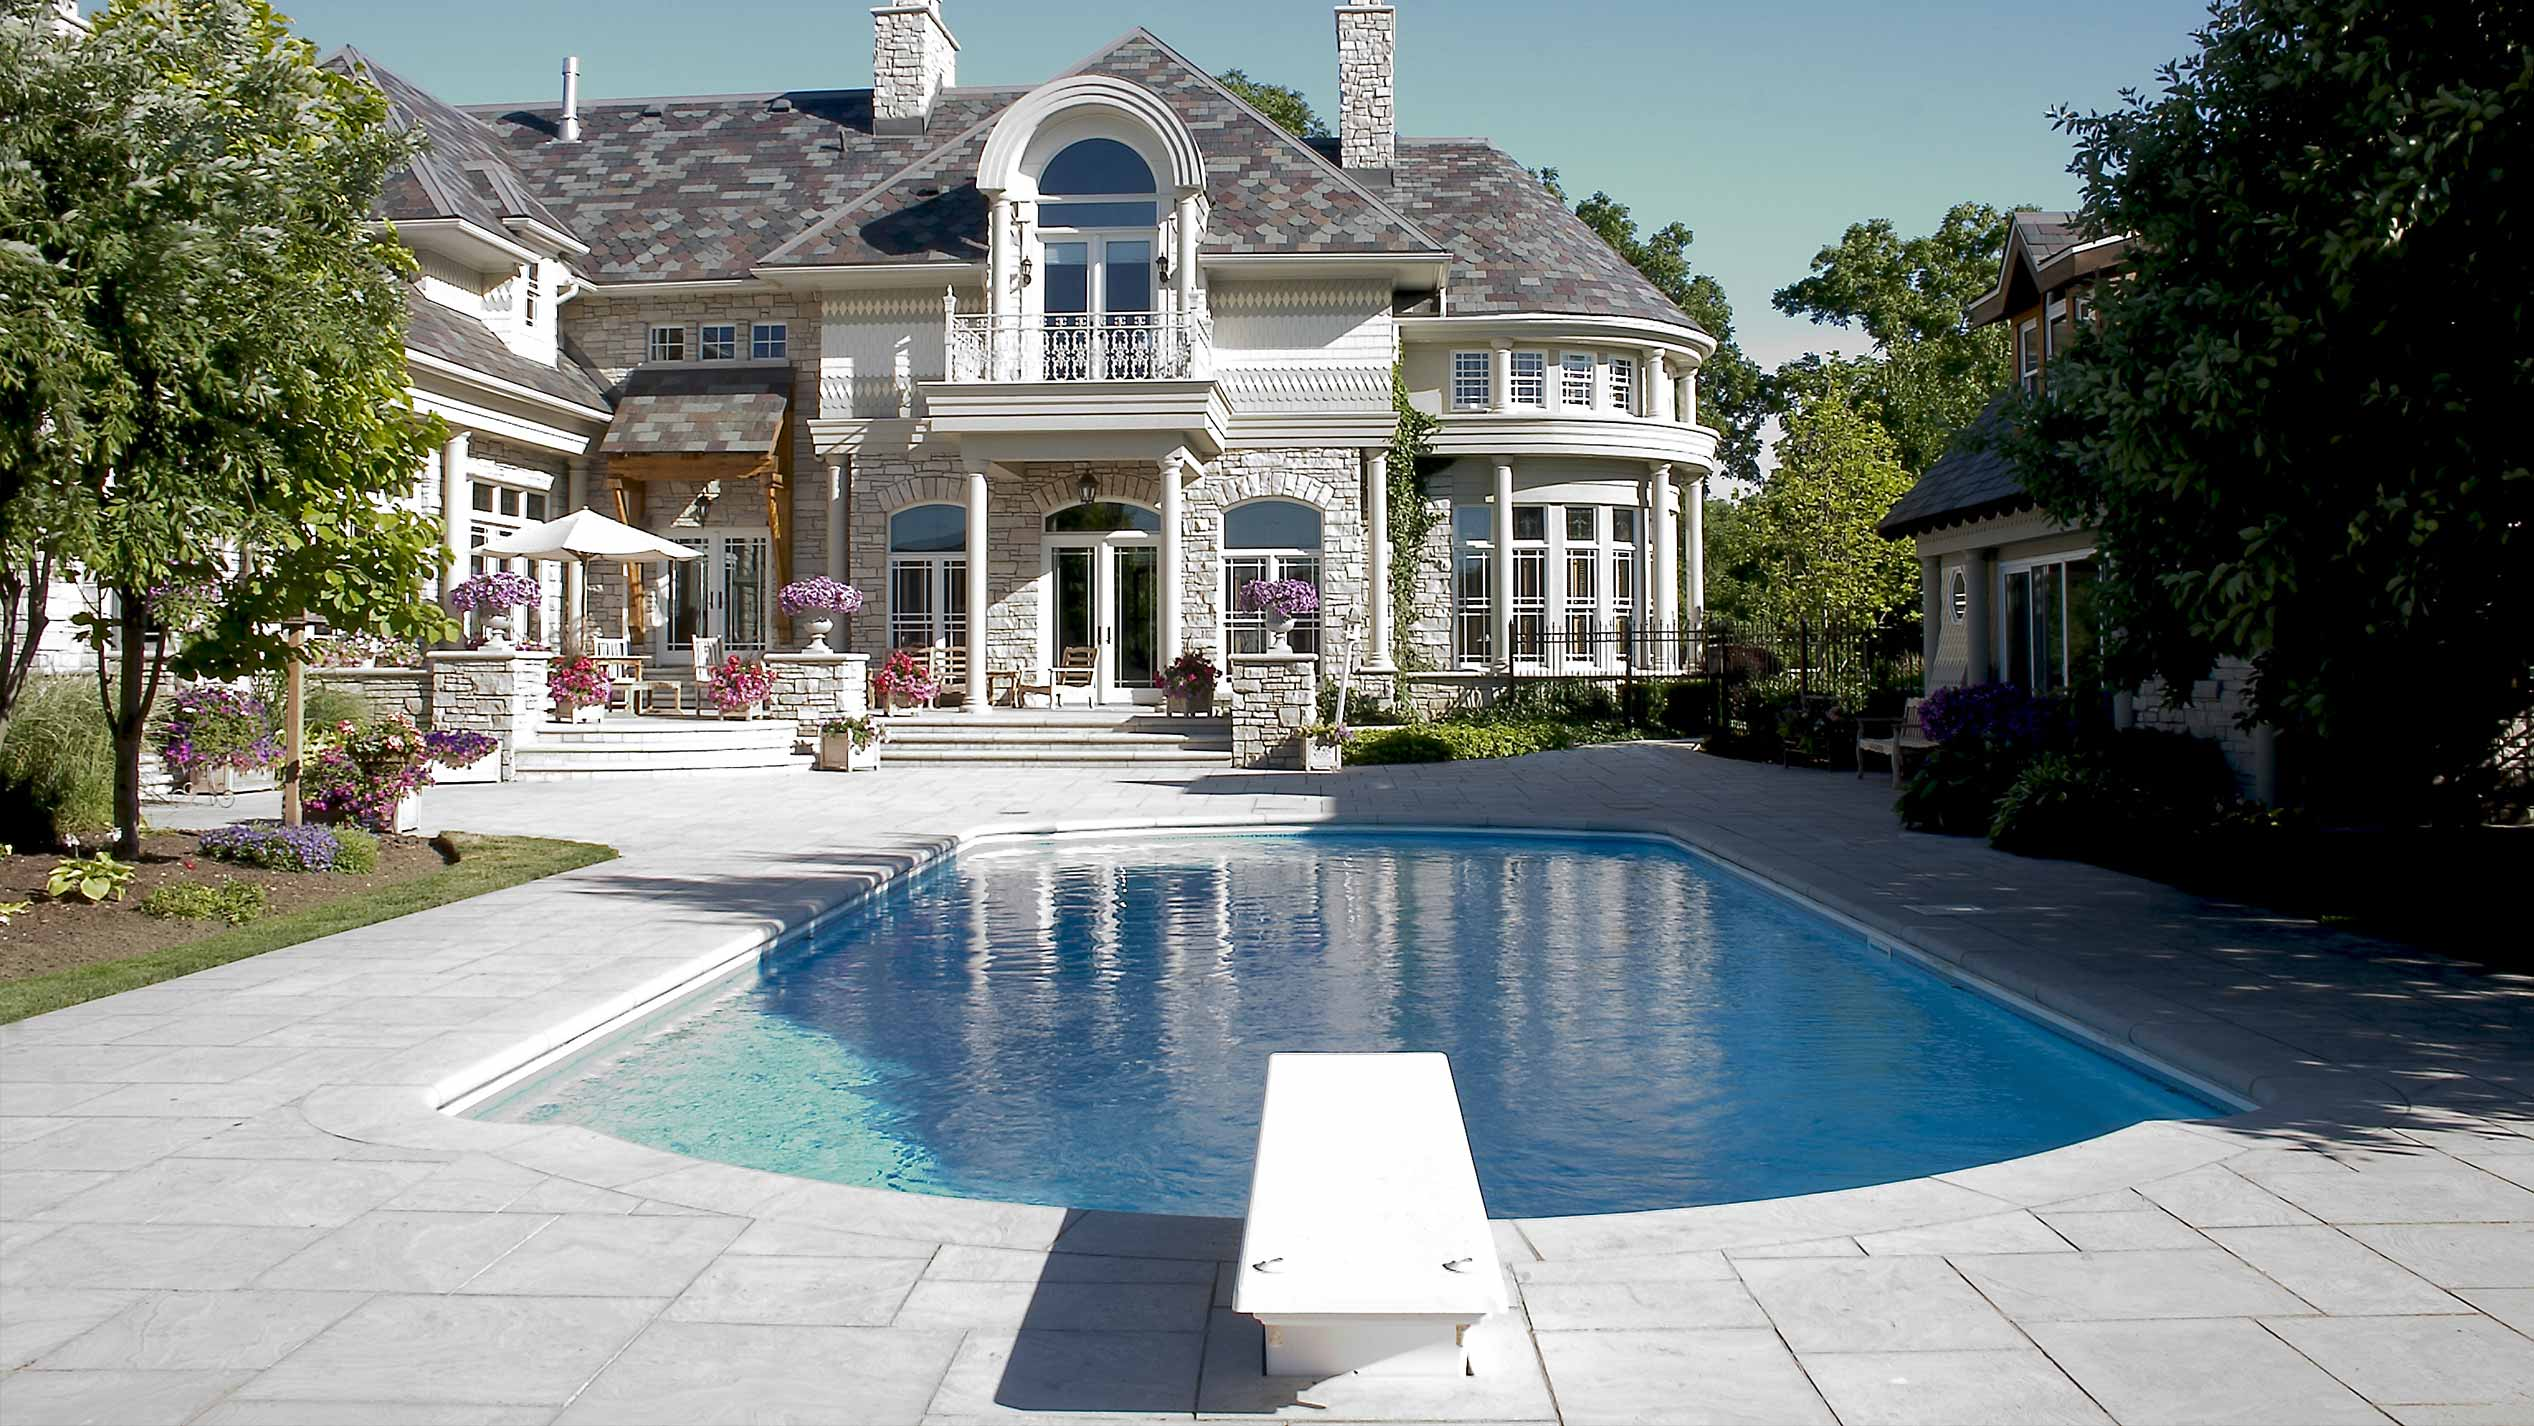 Luxury Pool Design From The Experts In Deluxe Swimming Pools